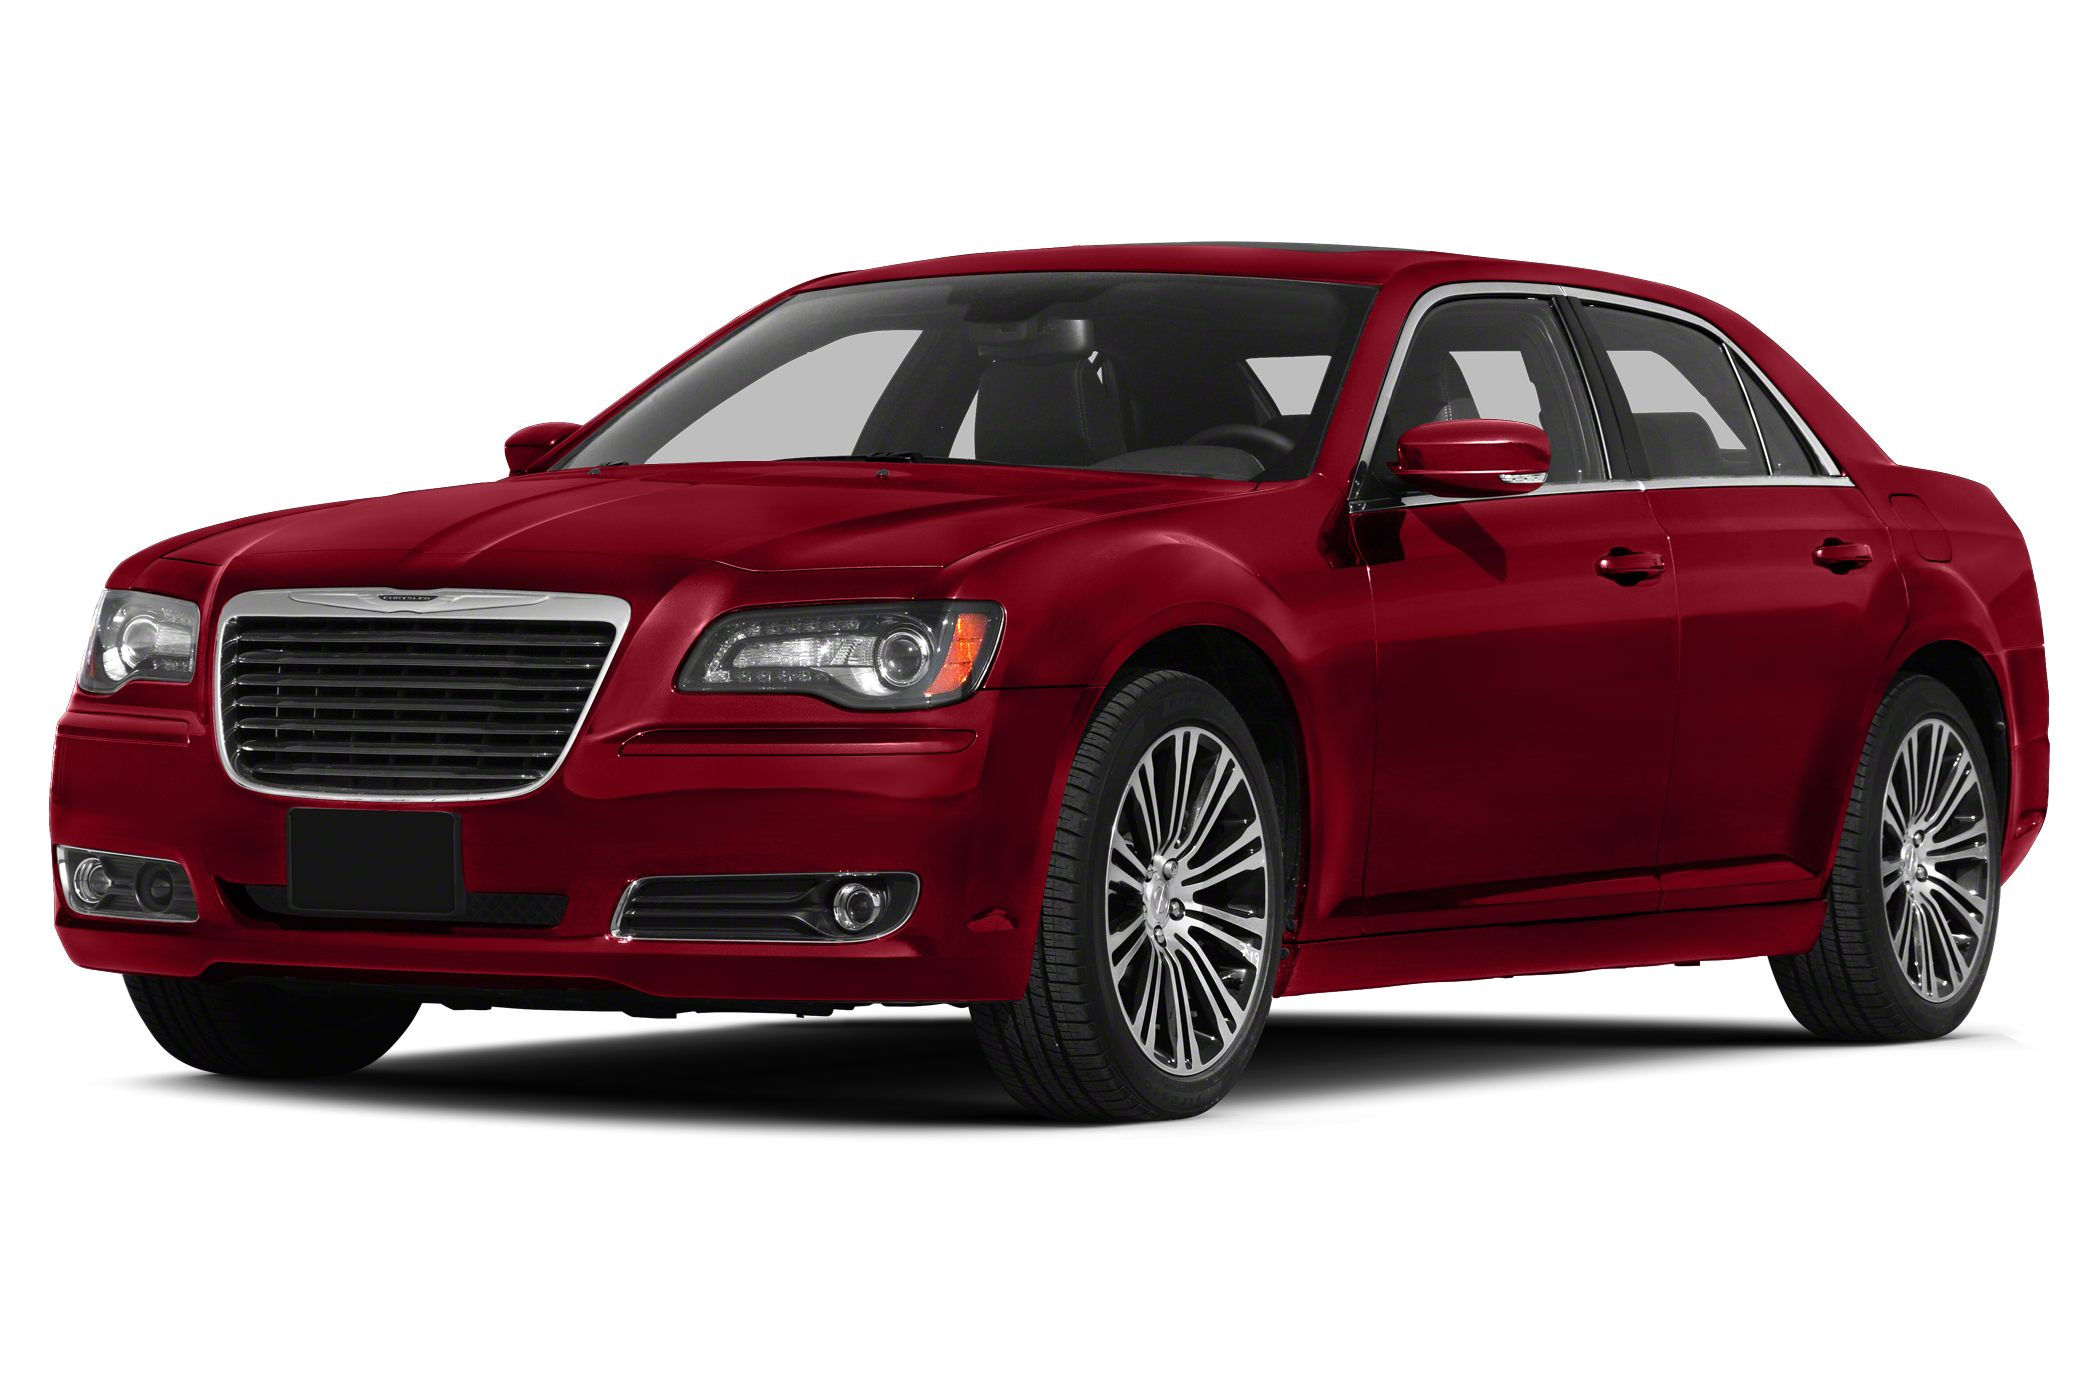 car for sale 300 dollars new used chrysler 300s for sale in columbus oh less than 5 000 dollars. Black Bedroom Furniture Sets. Home Design Ideas